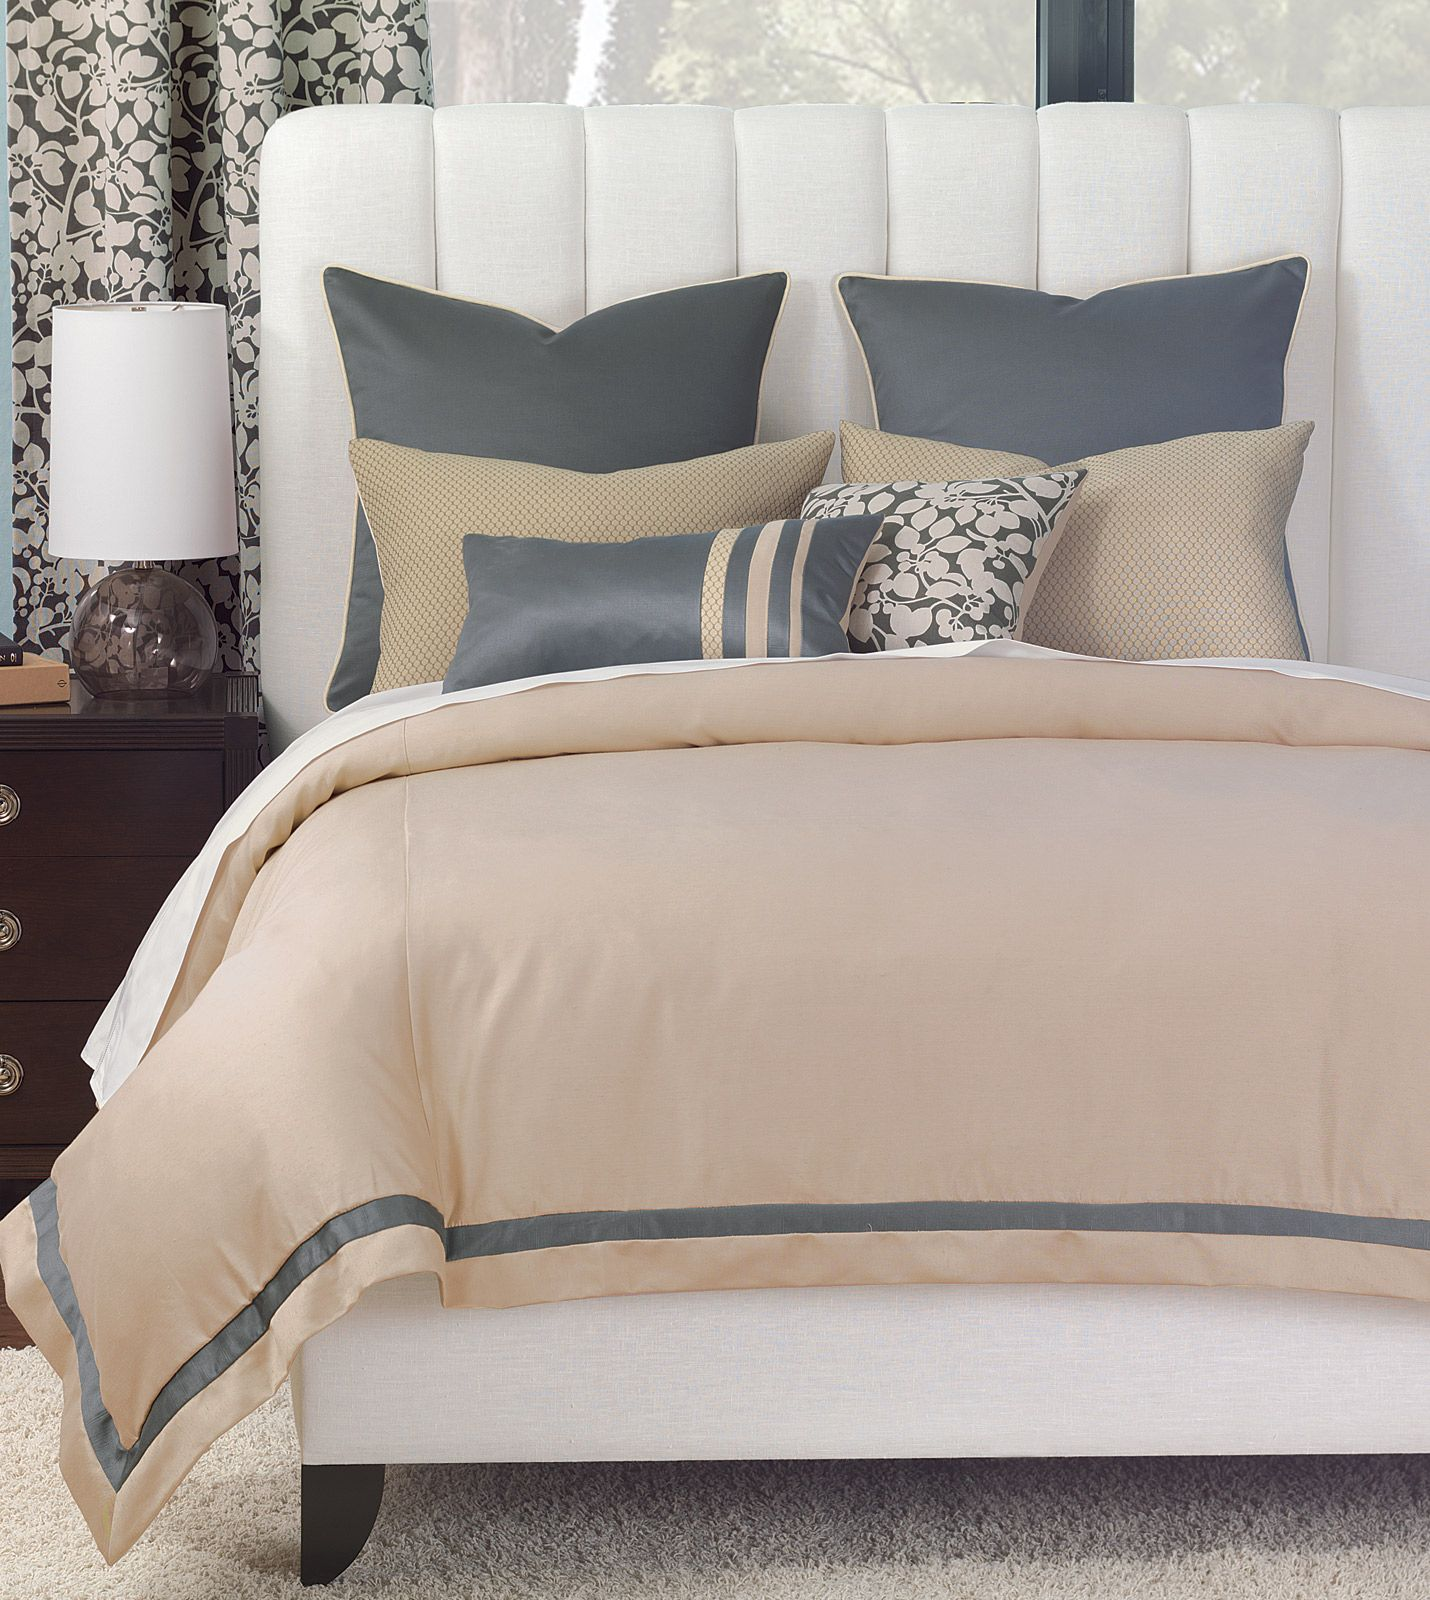 Master Bedroom Bedding Collections Niche Luxury Bedding Collections Custom Bedding Bed Linens